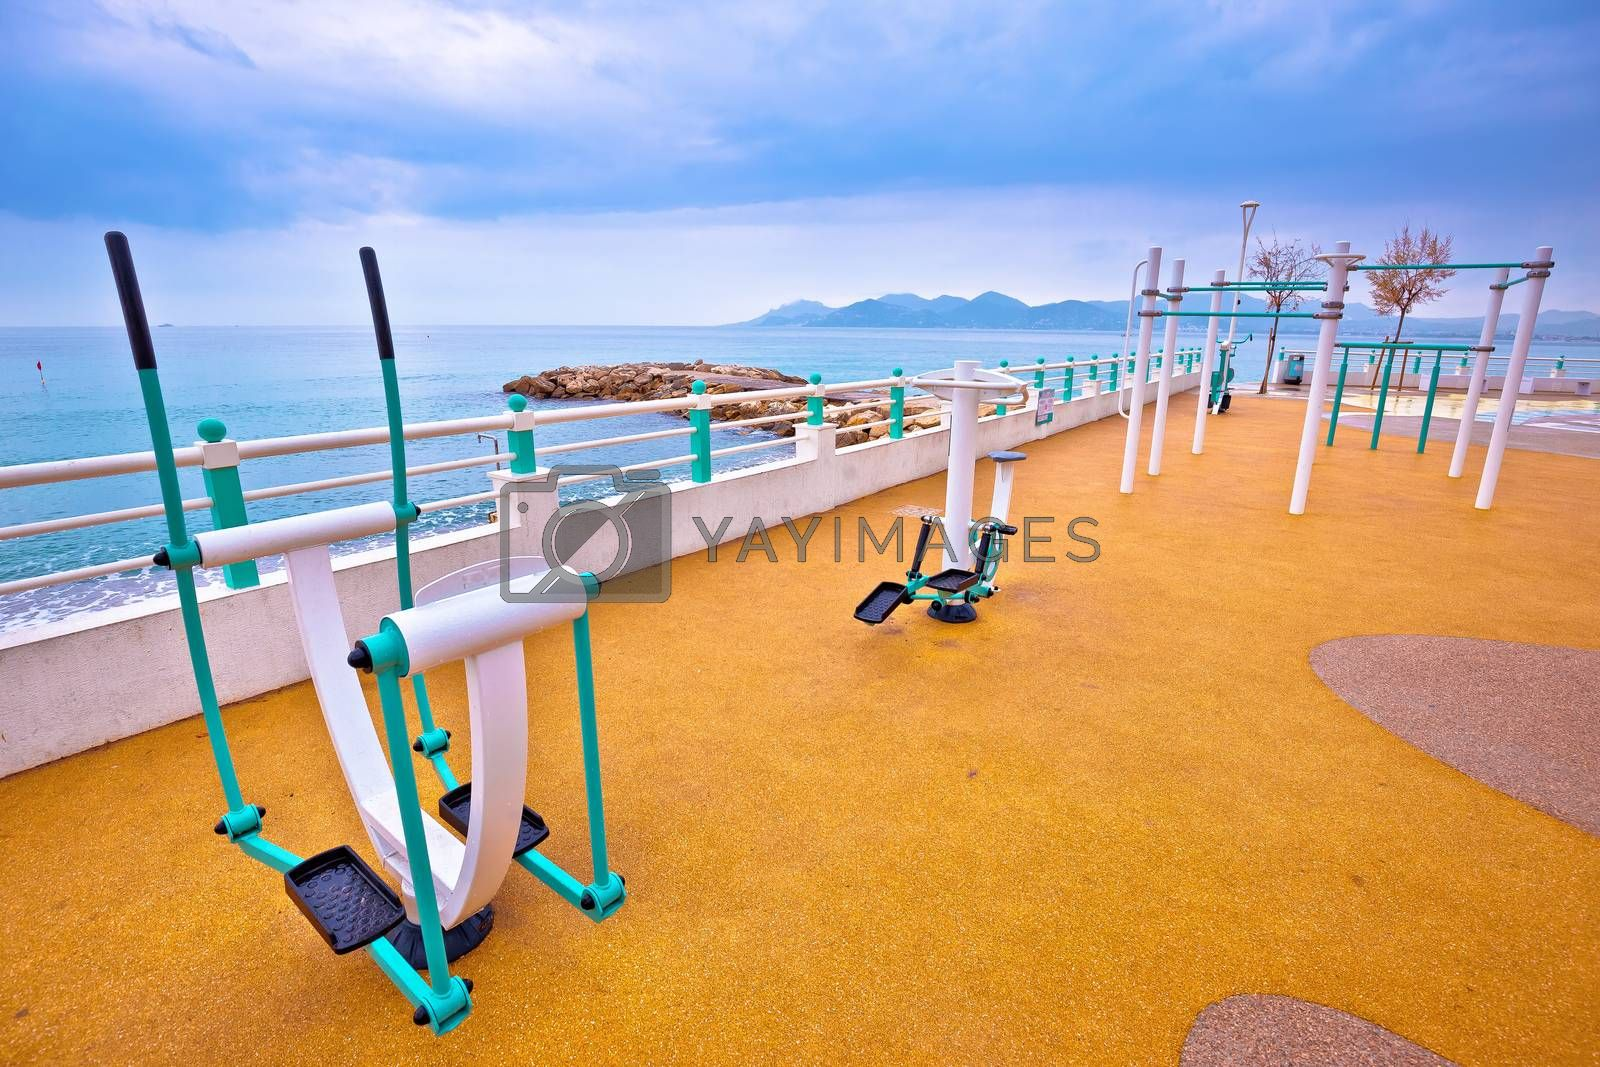 Public fitness exercise park by Mediterranean sea in Cannes view, activity on Franch riviera, Provenge region of France